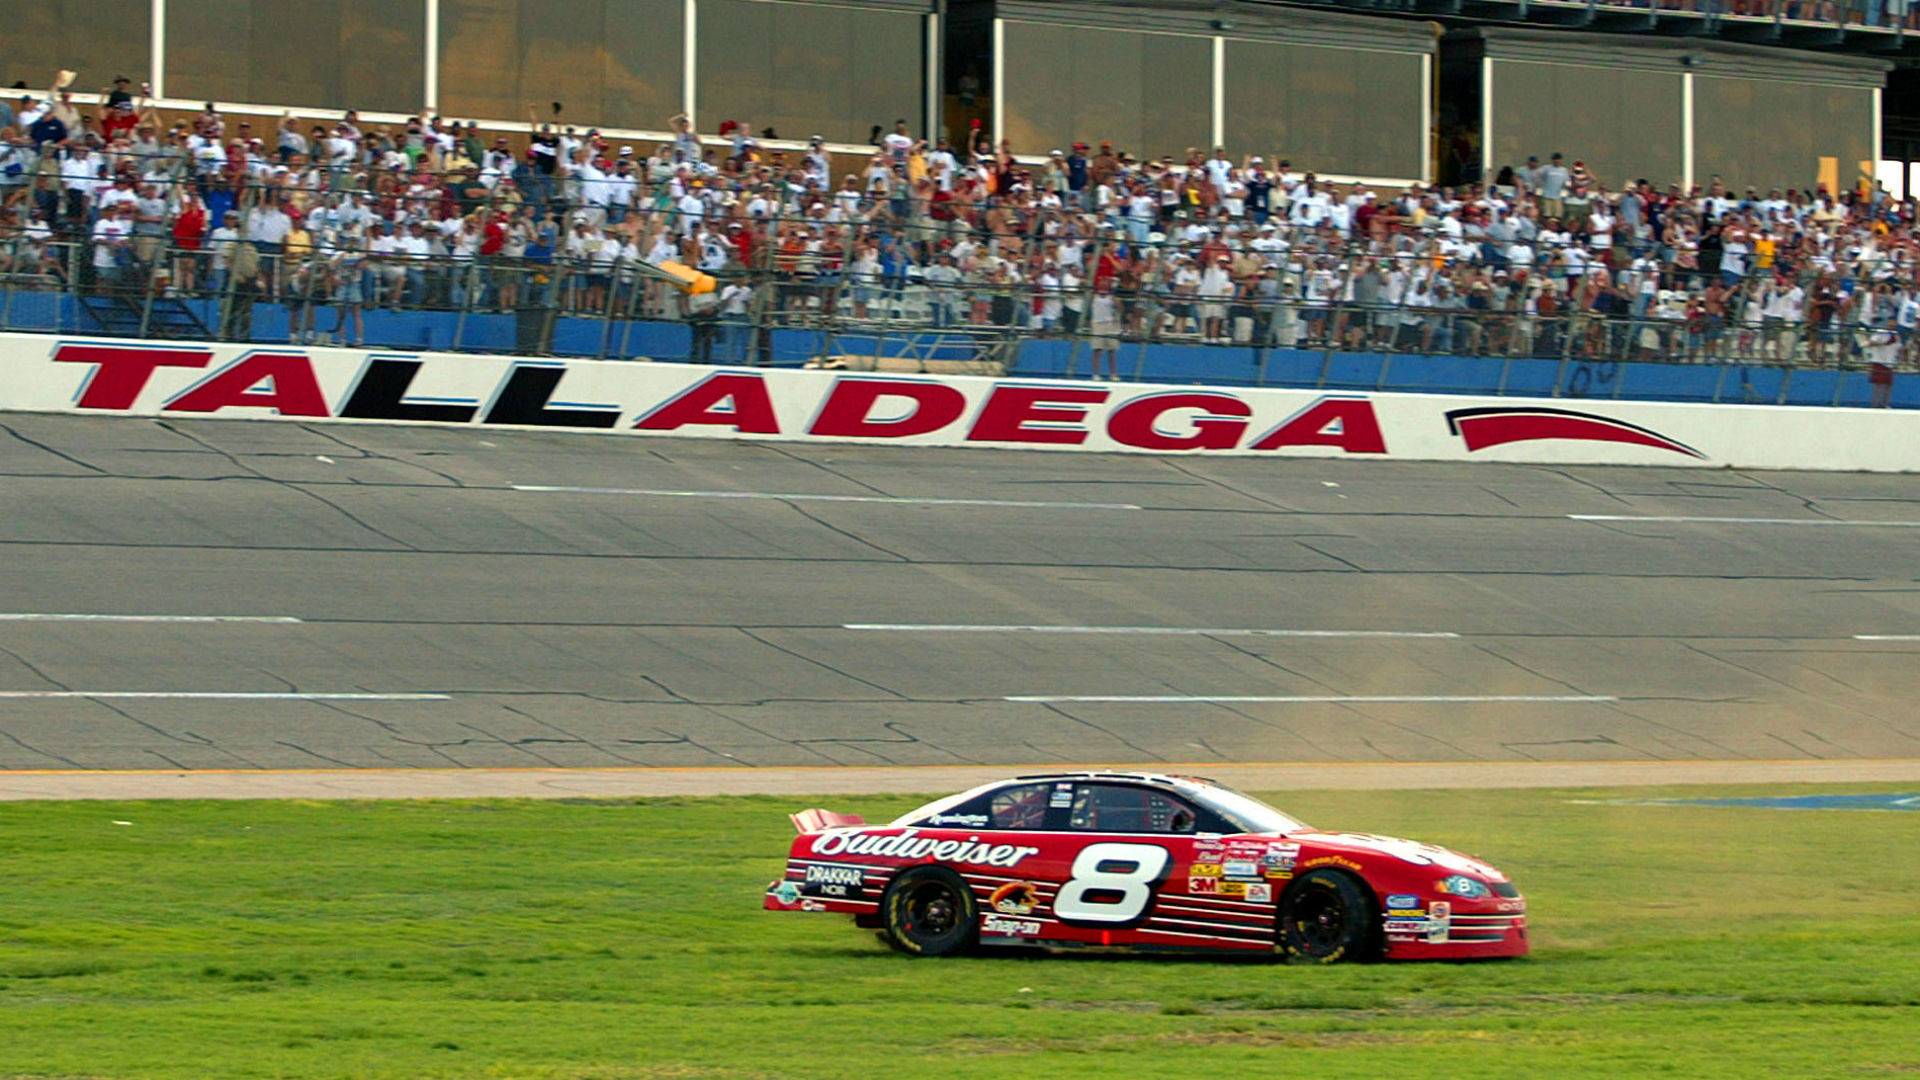 Dale Earnhardt Wallpaper 63 Image Collections Of: Dale Earnhardt Sr Wallpaper (66+ Pictures